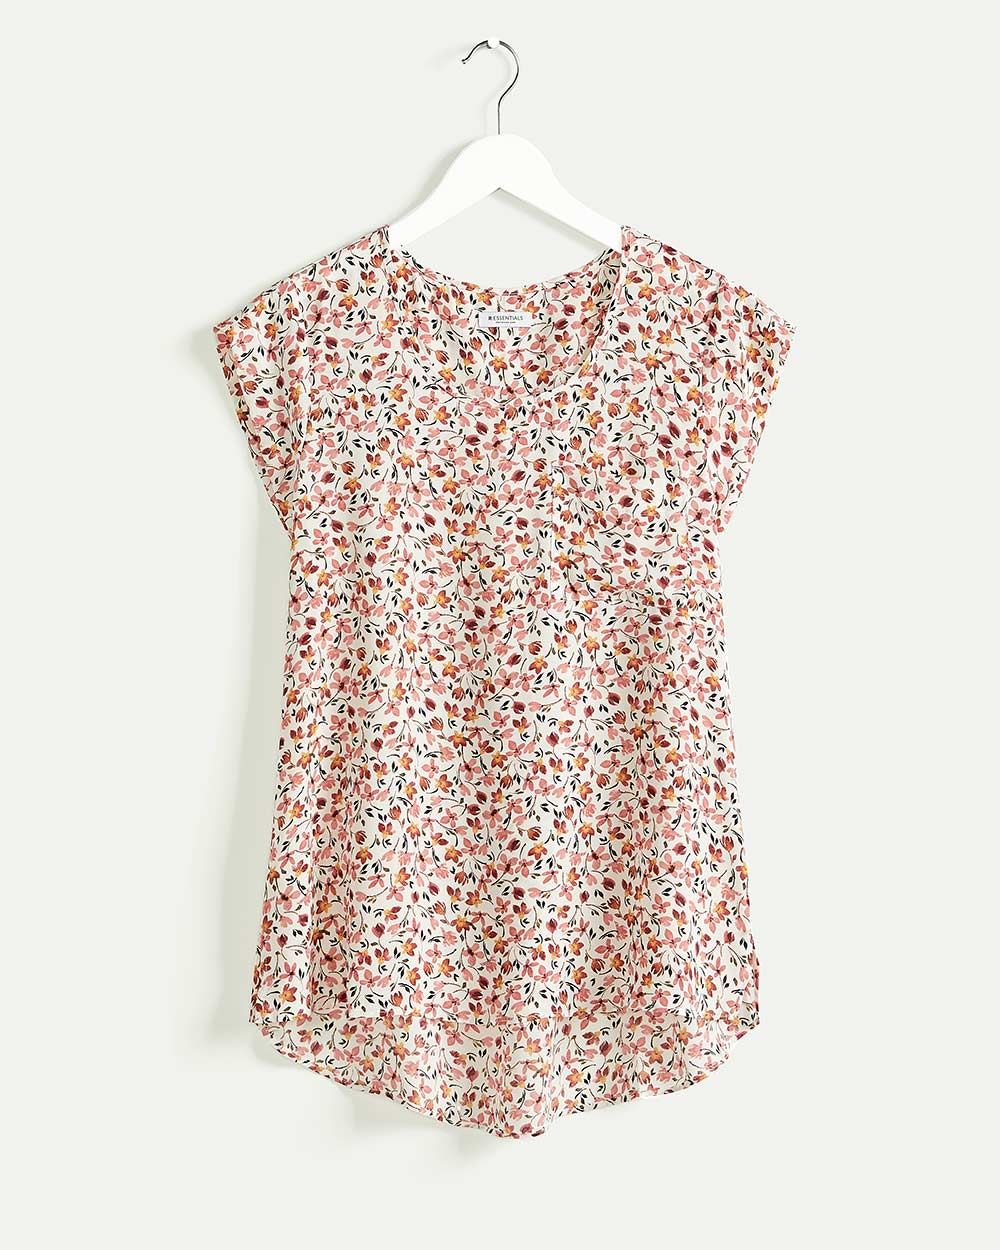 Cap Sleeve Scoop Neck Printed Blouse R Essentials